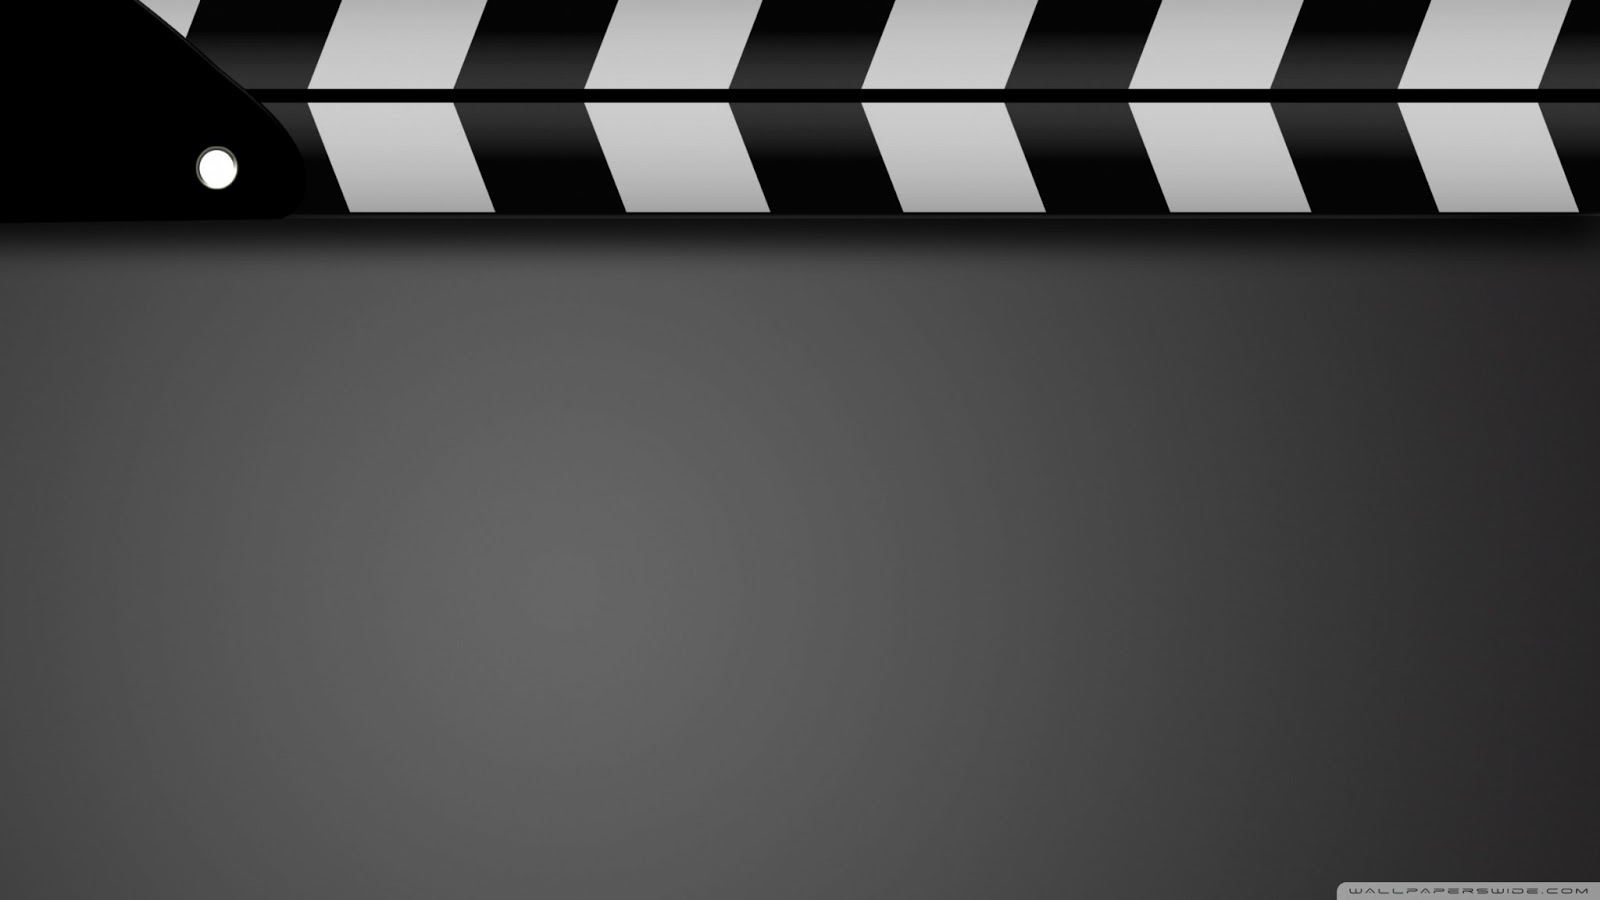 movie clapper board lotus clipart black and white lotus clipart png